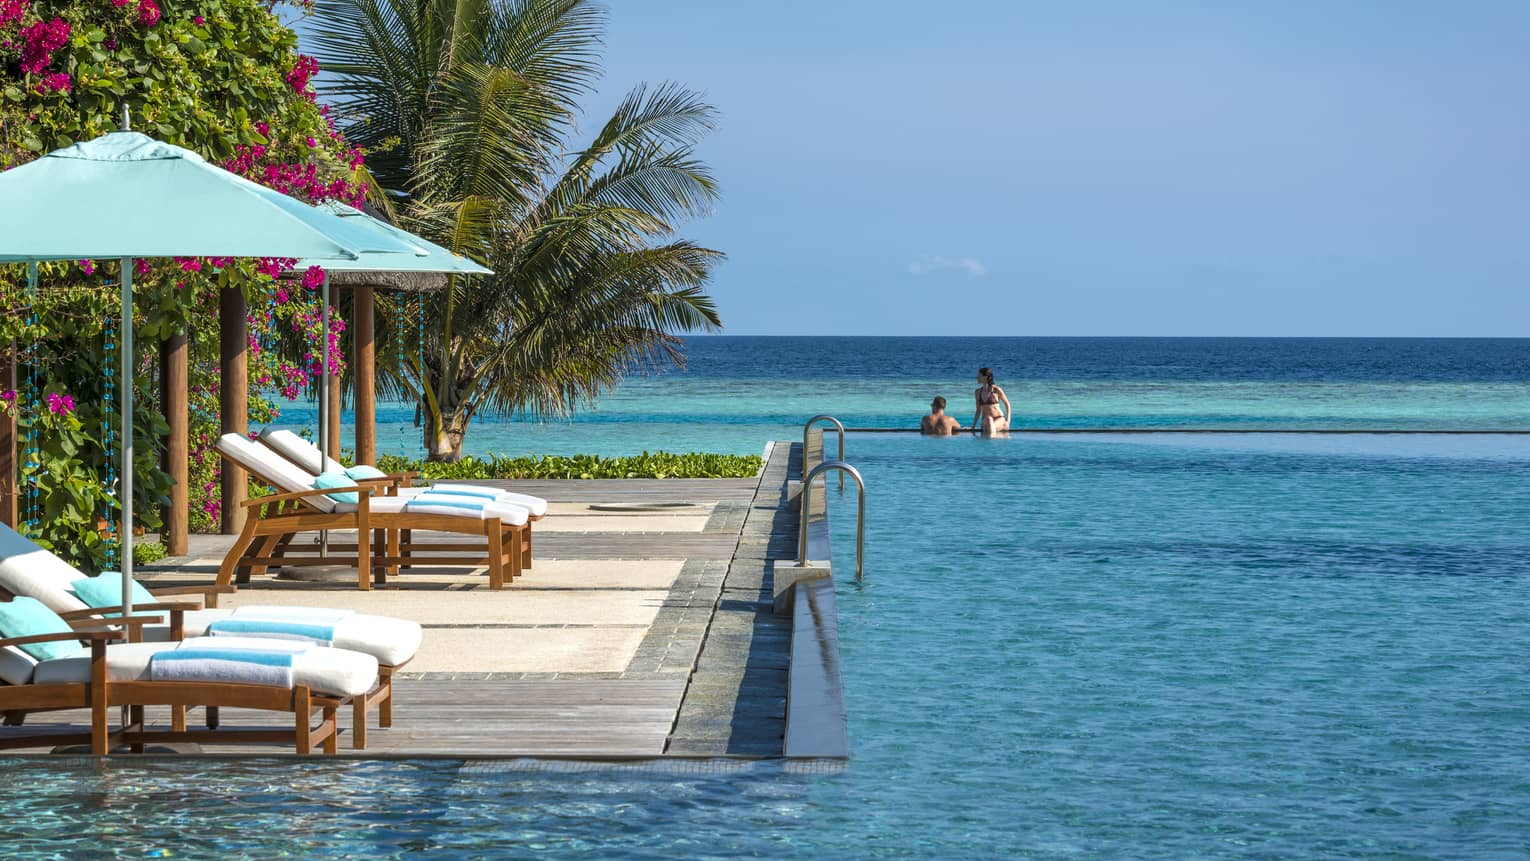 Resort infinity pool leading out to turquoise ocean, wooden lounge chairs and light blue umbrellas